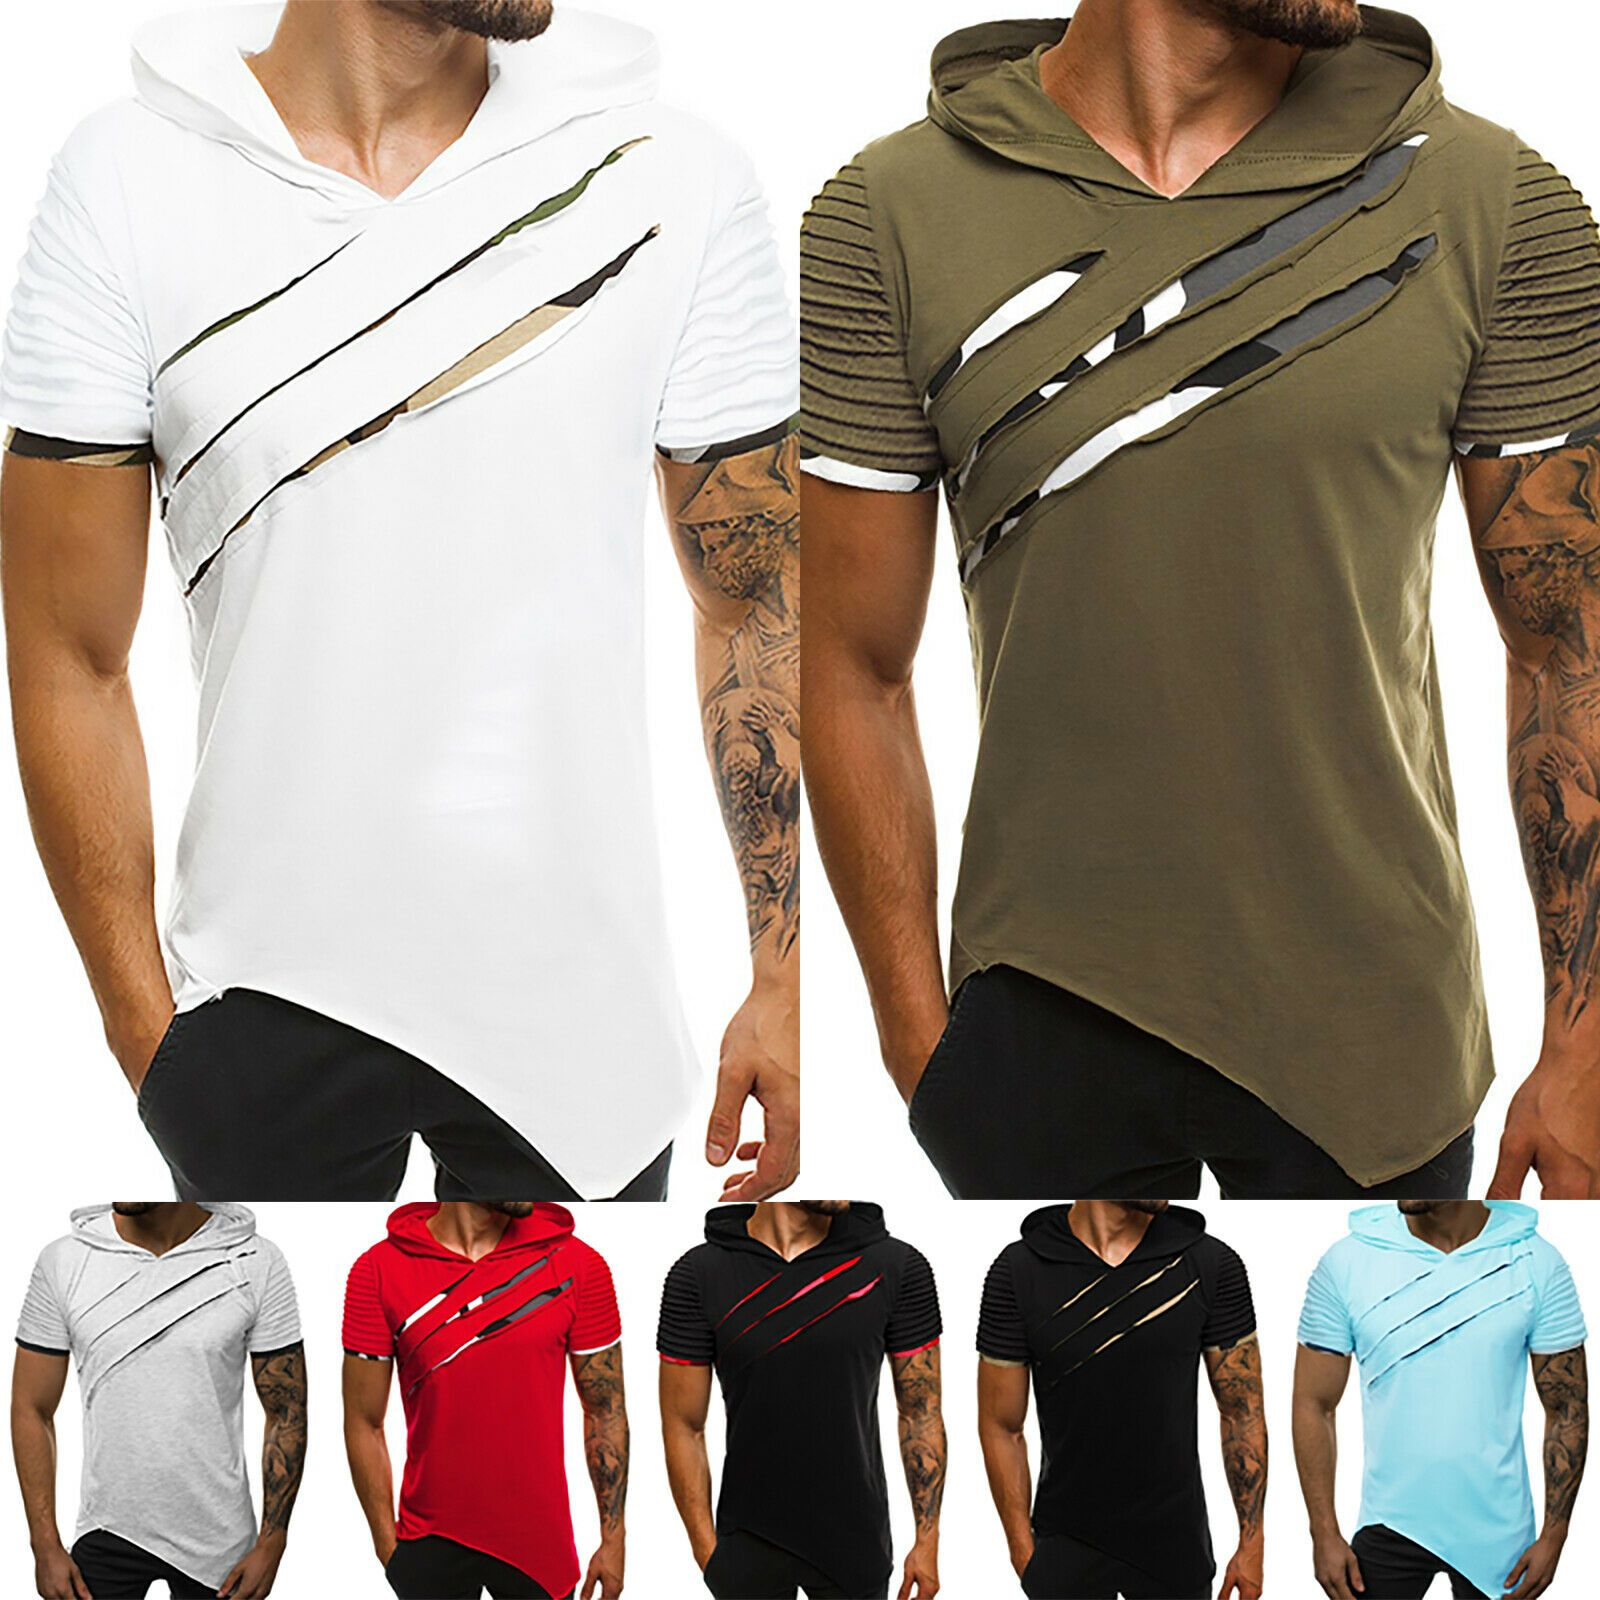 Men Slim Fit Short Sleeve Shirts Hooded Muscle Tops Hoodie Casual Basic T-shirt